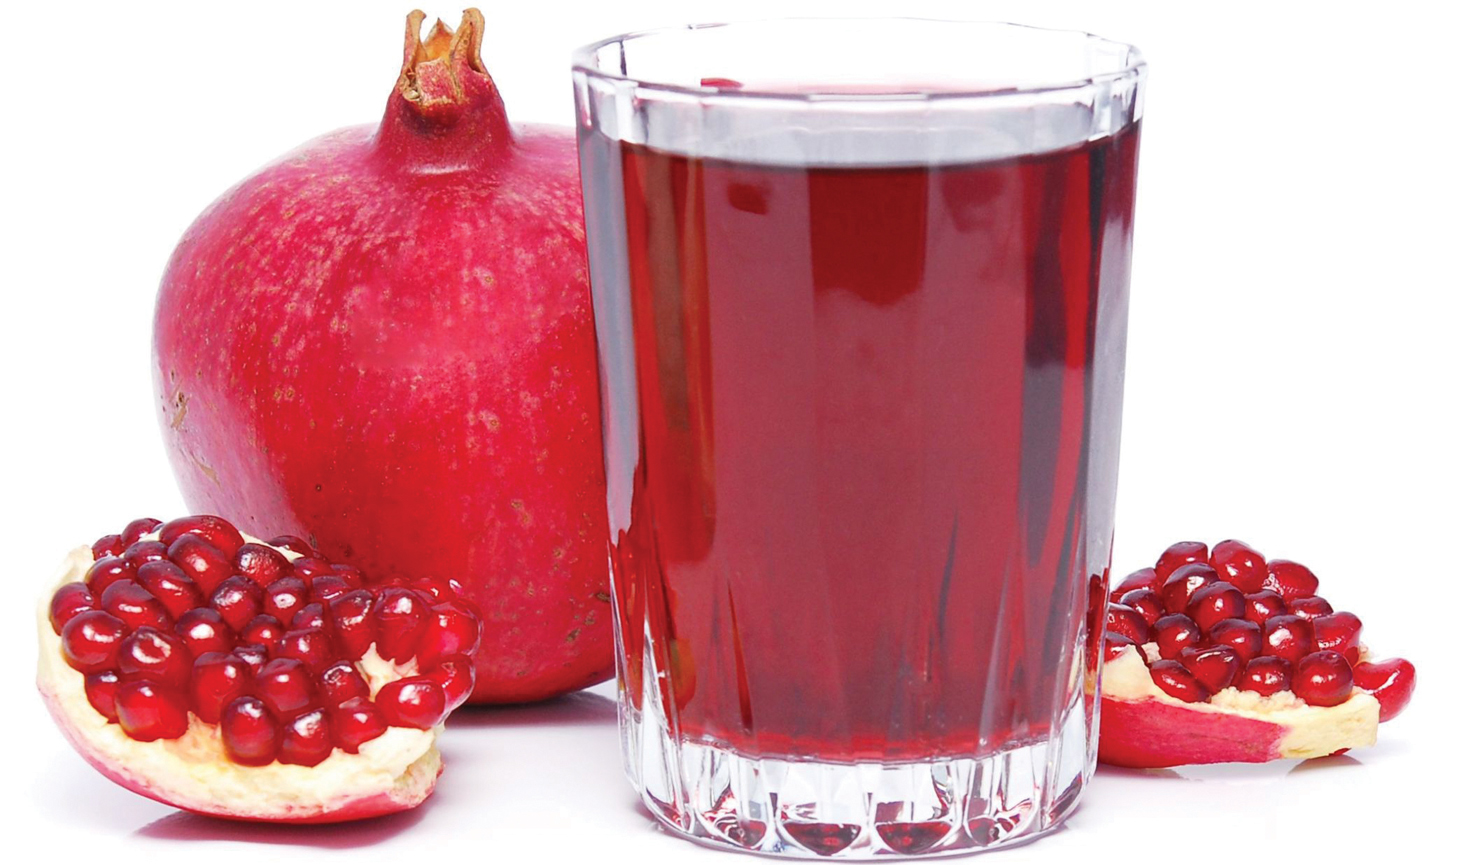 Pomegranate-Juice-Superfood.jpeg